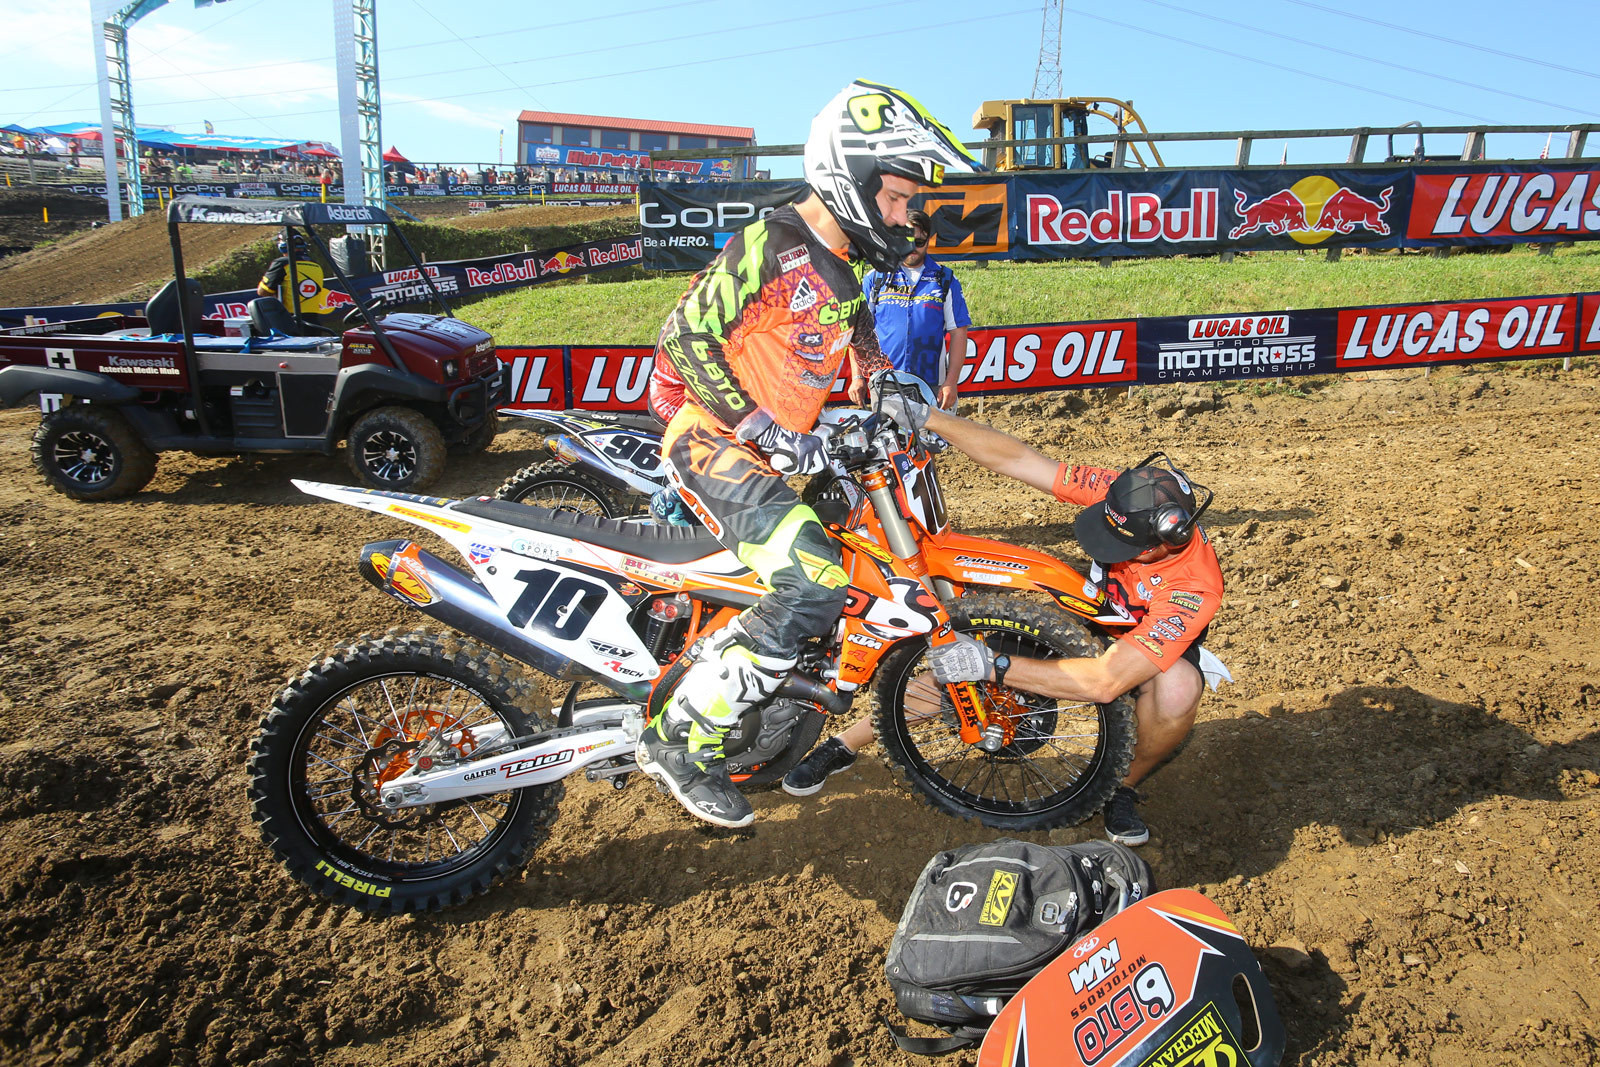 Justin Brayton and Brent Duffe - Vital MX Pit Bits: High Point - Motocross Pictures - Vital MX